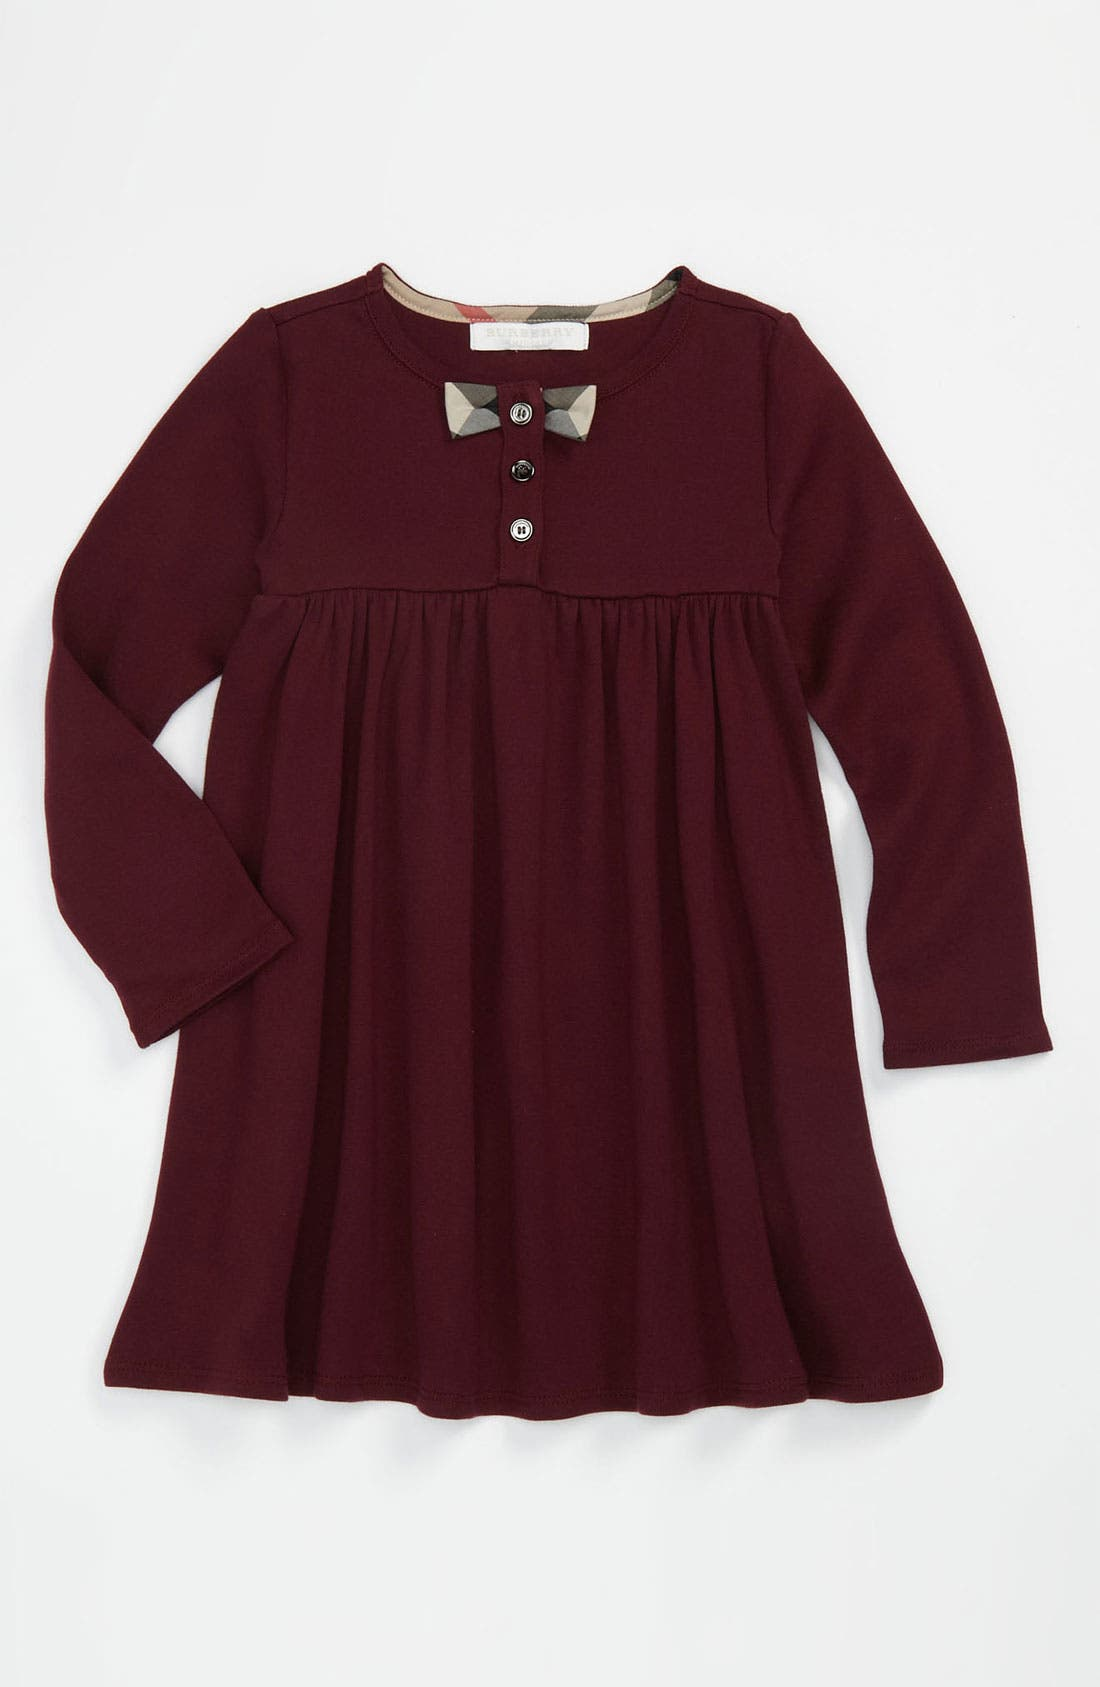 Alternate Image 1 Selected - Burberry Empire Waist Dress (Toddler)